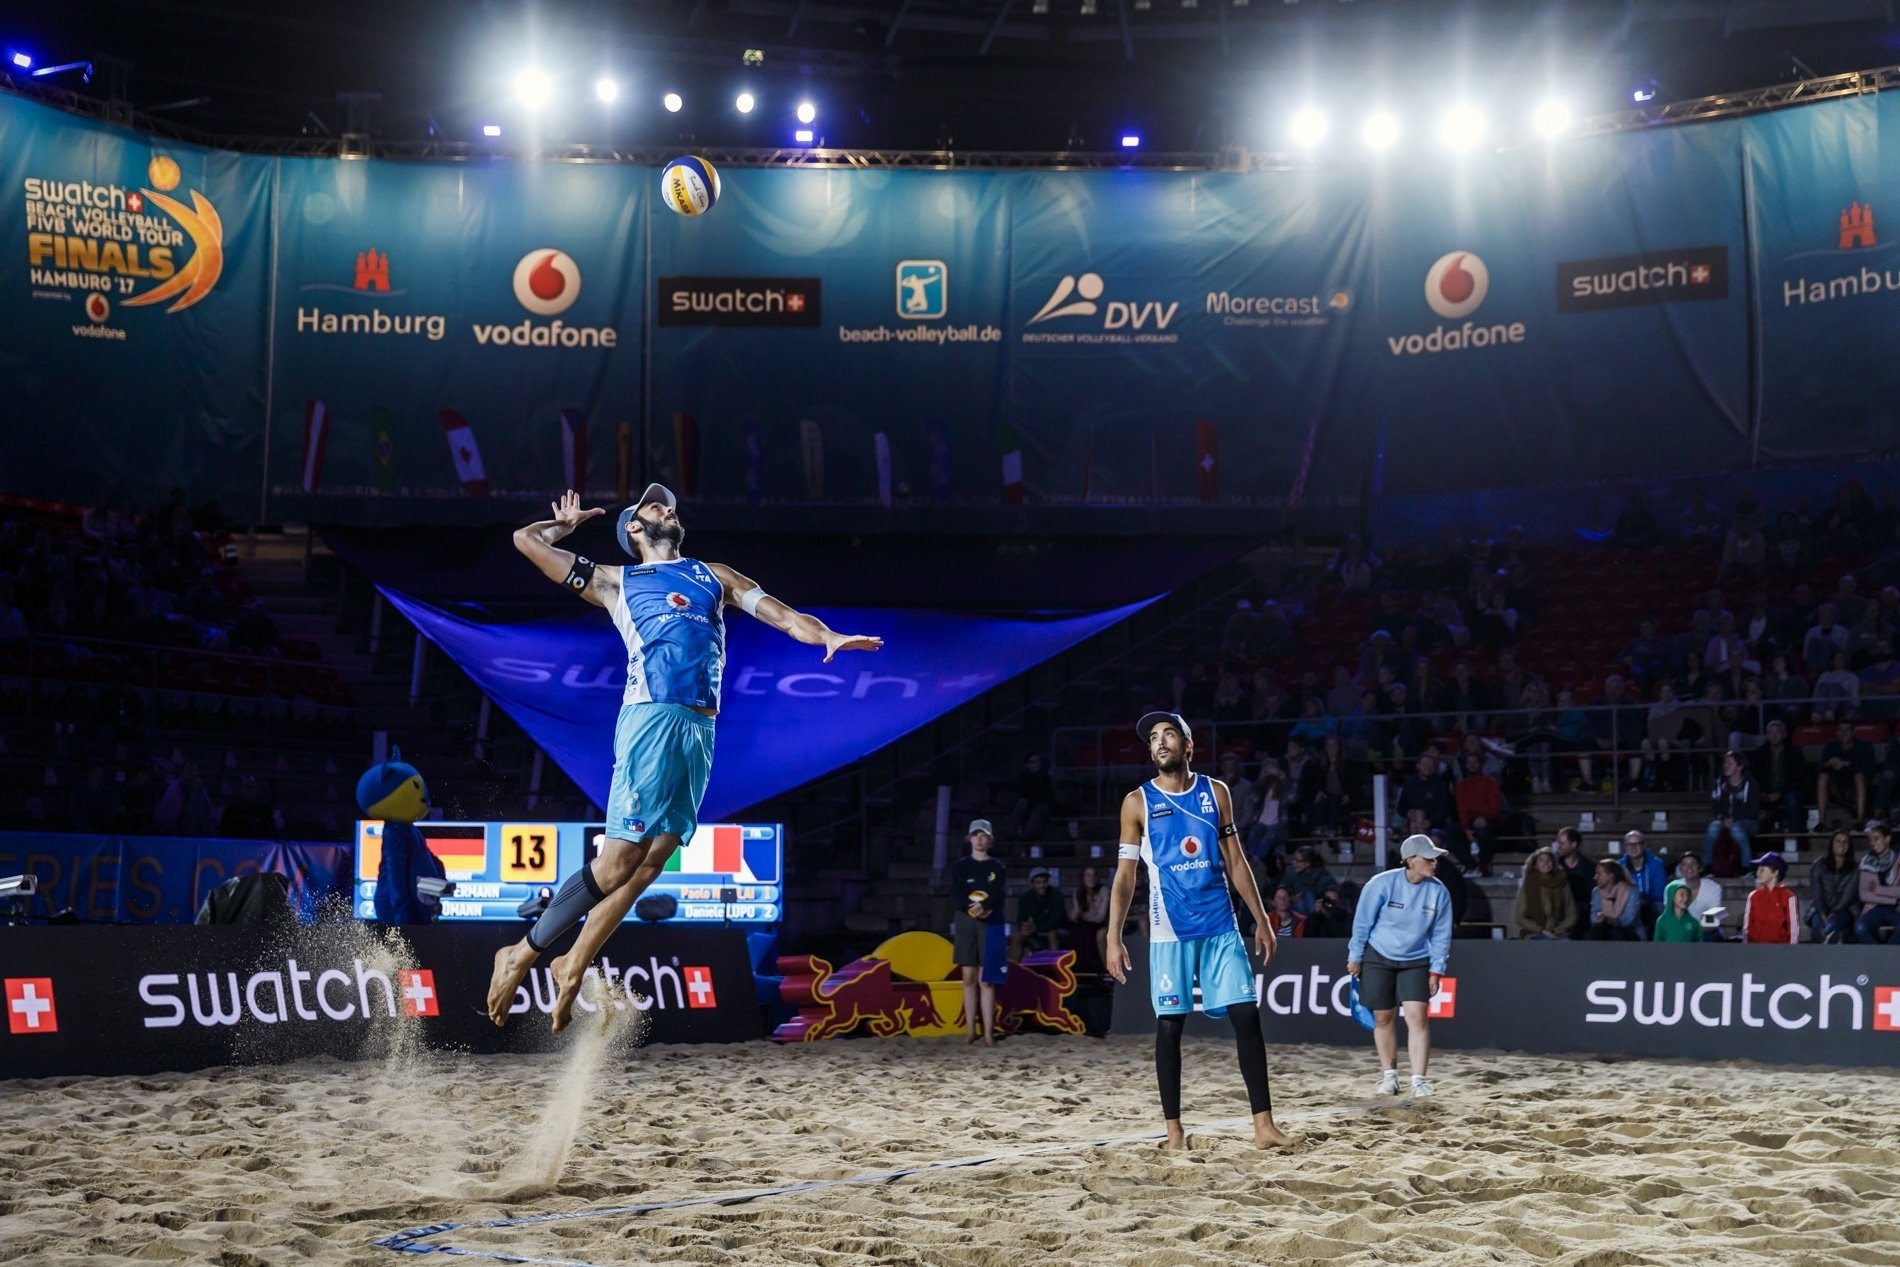 Italians Lupo/Nicolai wowed the crowd in the last match of the day on the Red Bull Beach Arena